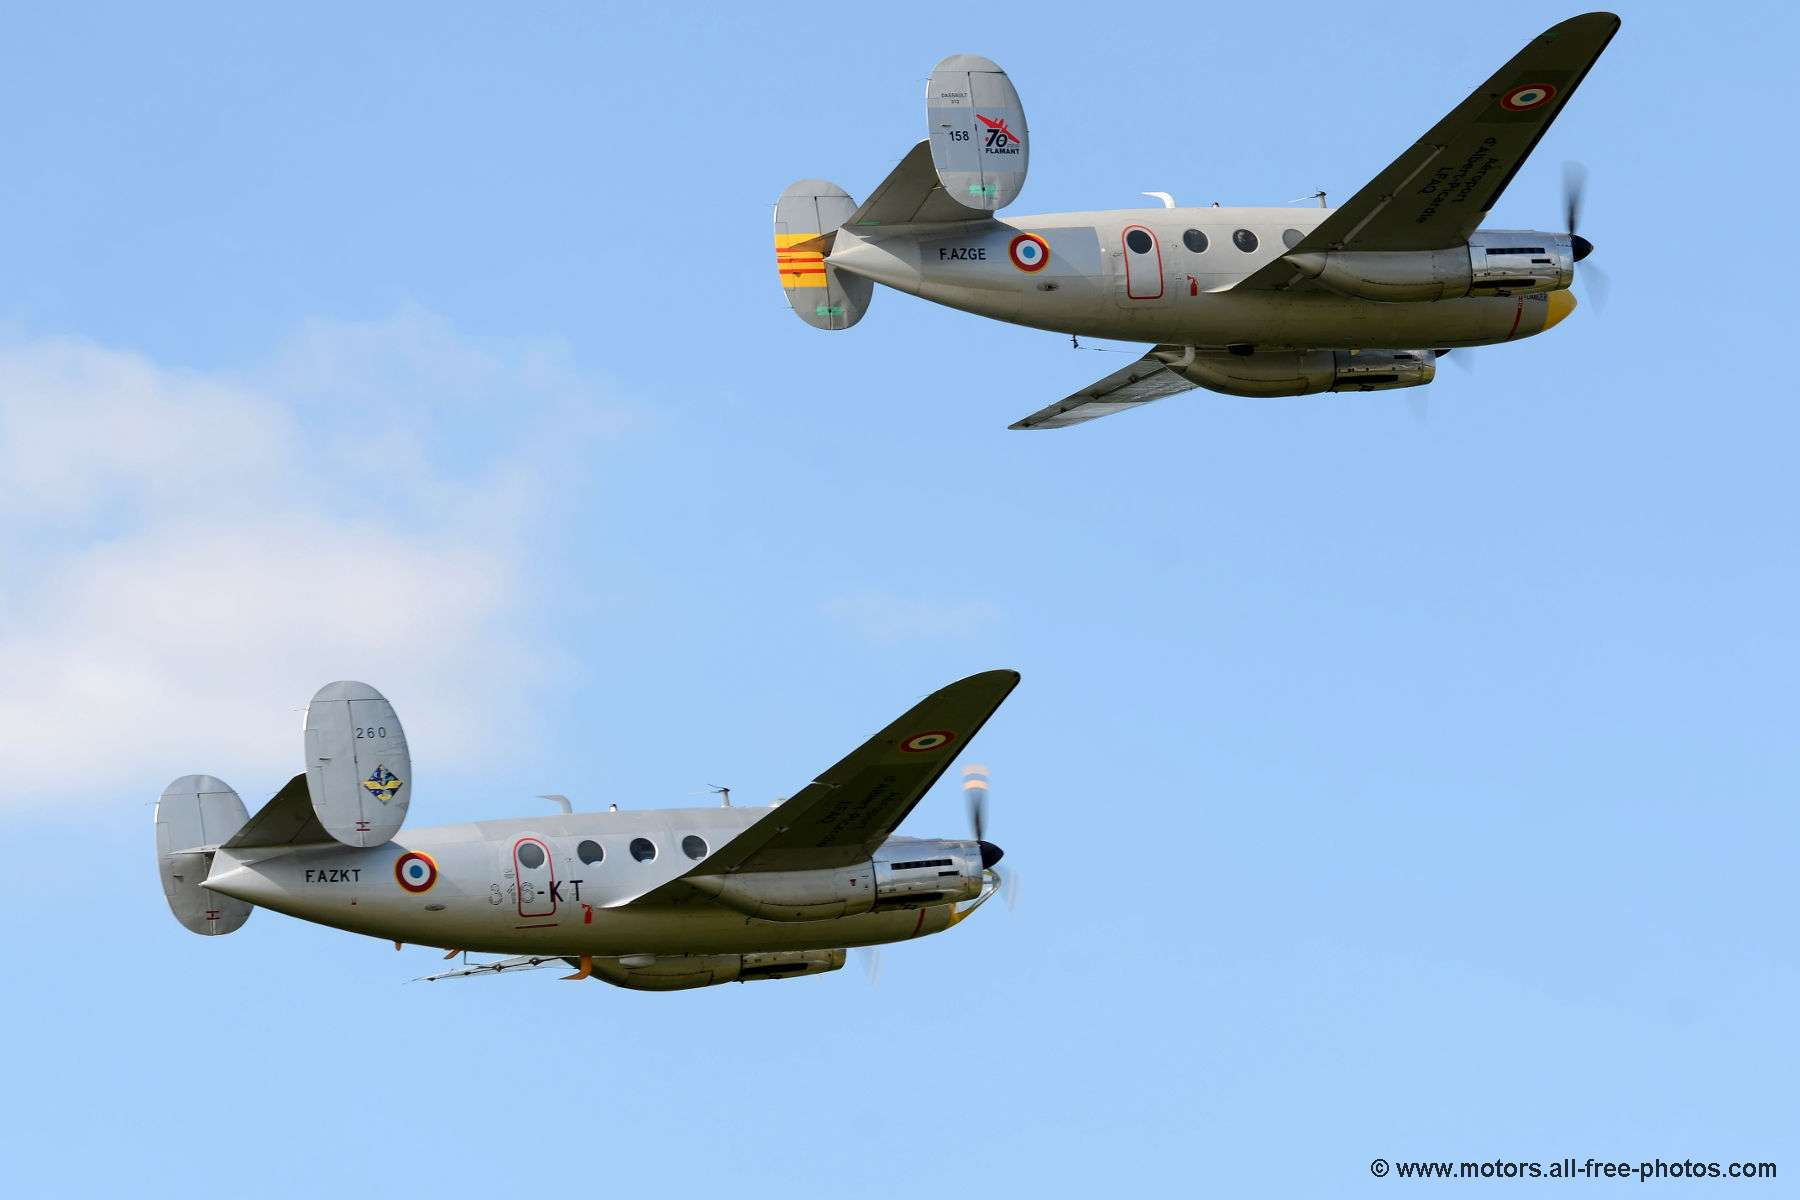 Dassault MD-311 & MD-312 Flamant